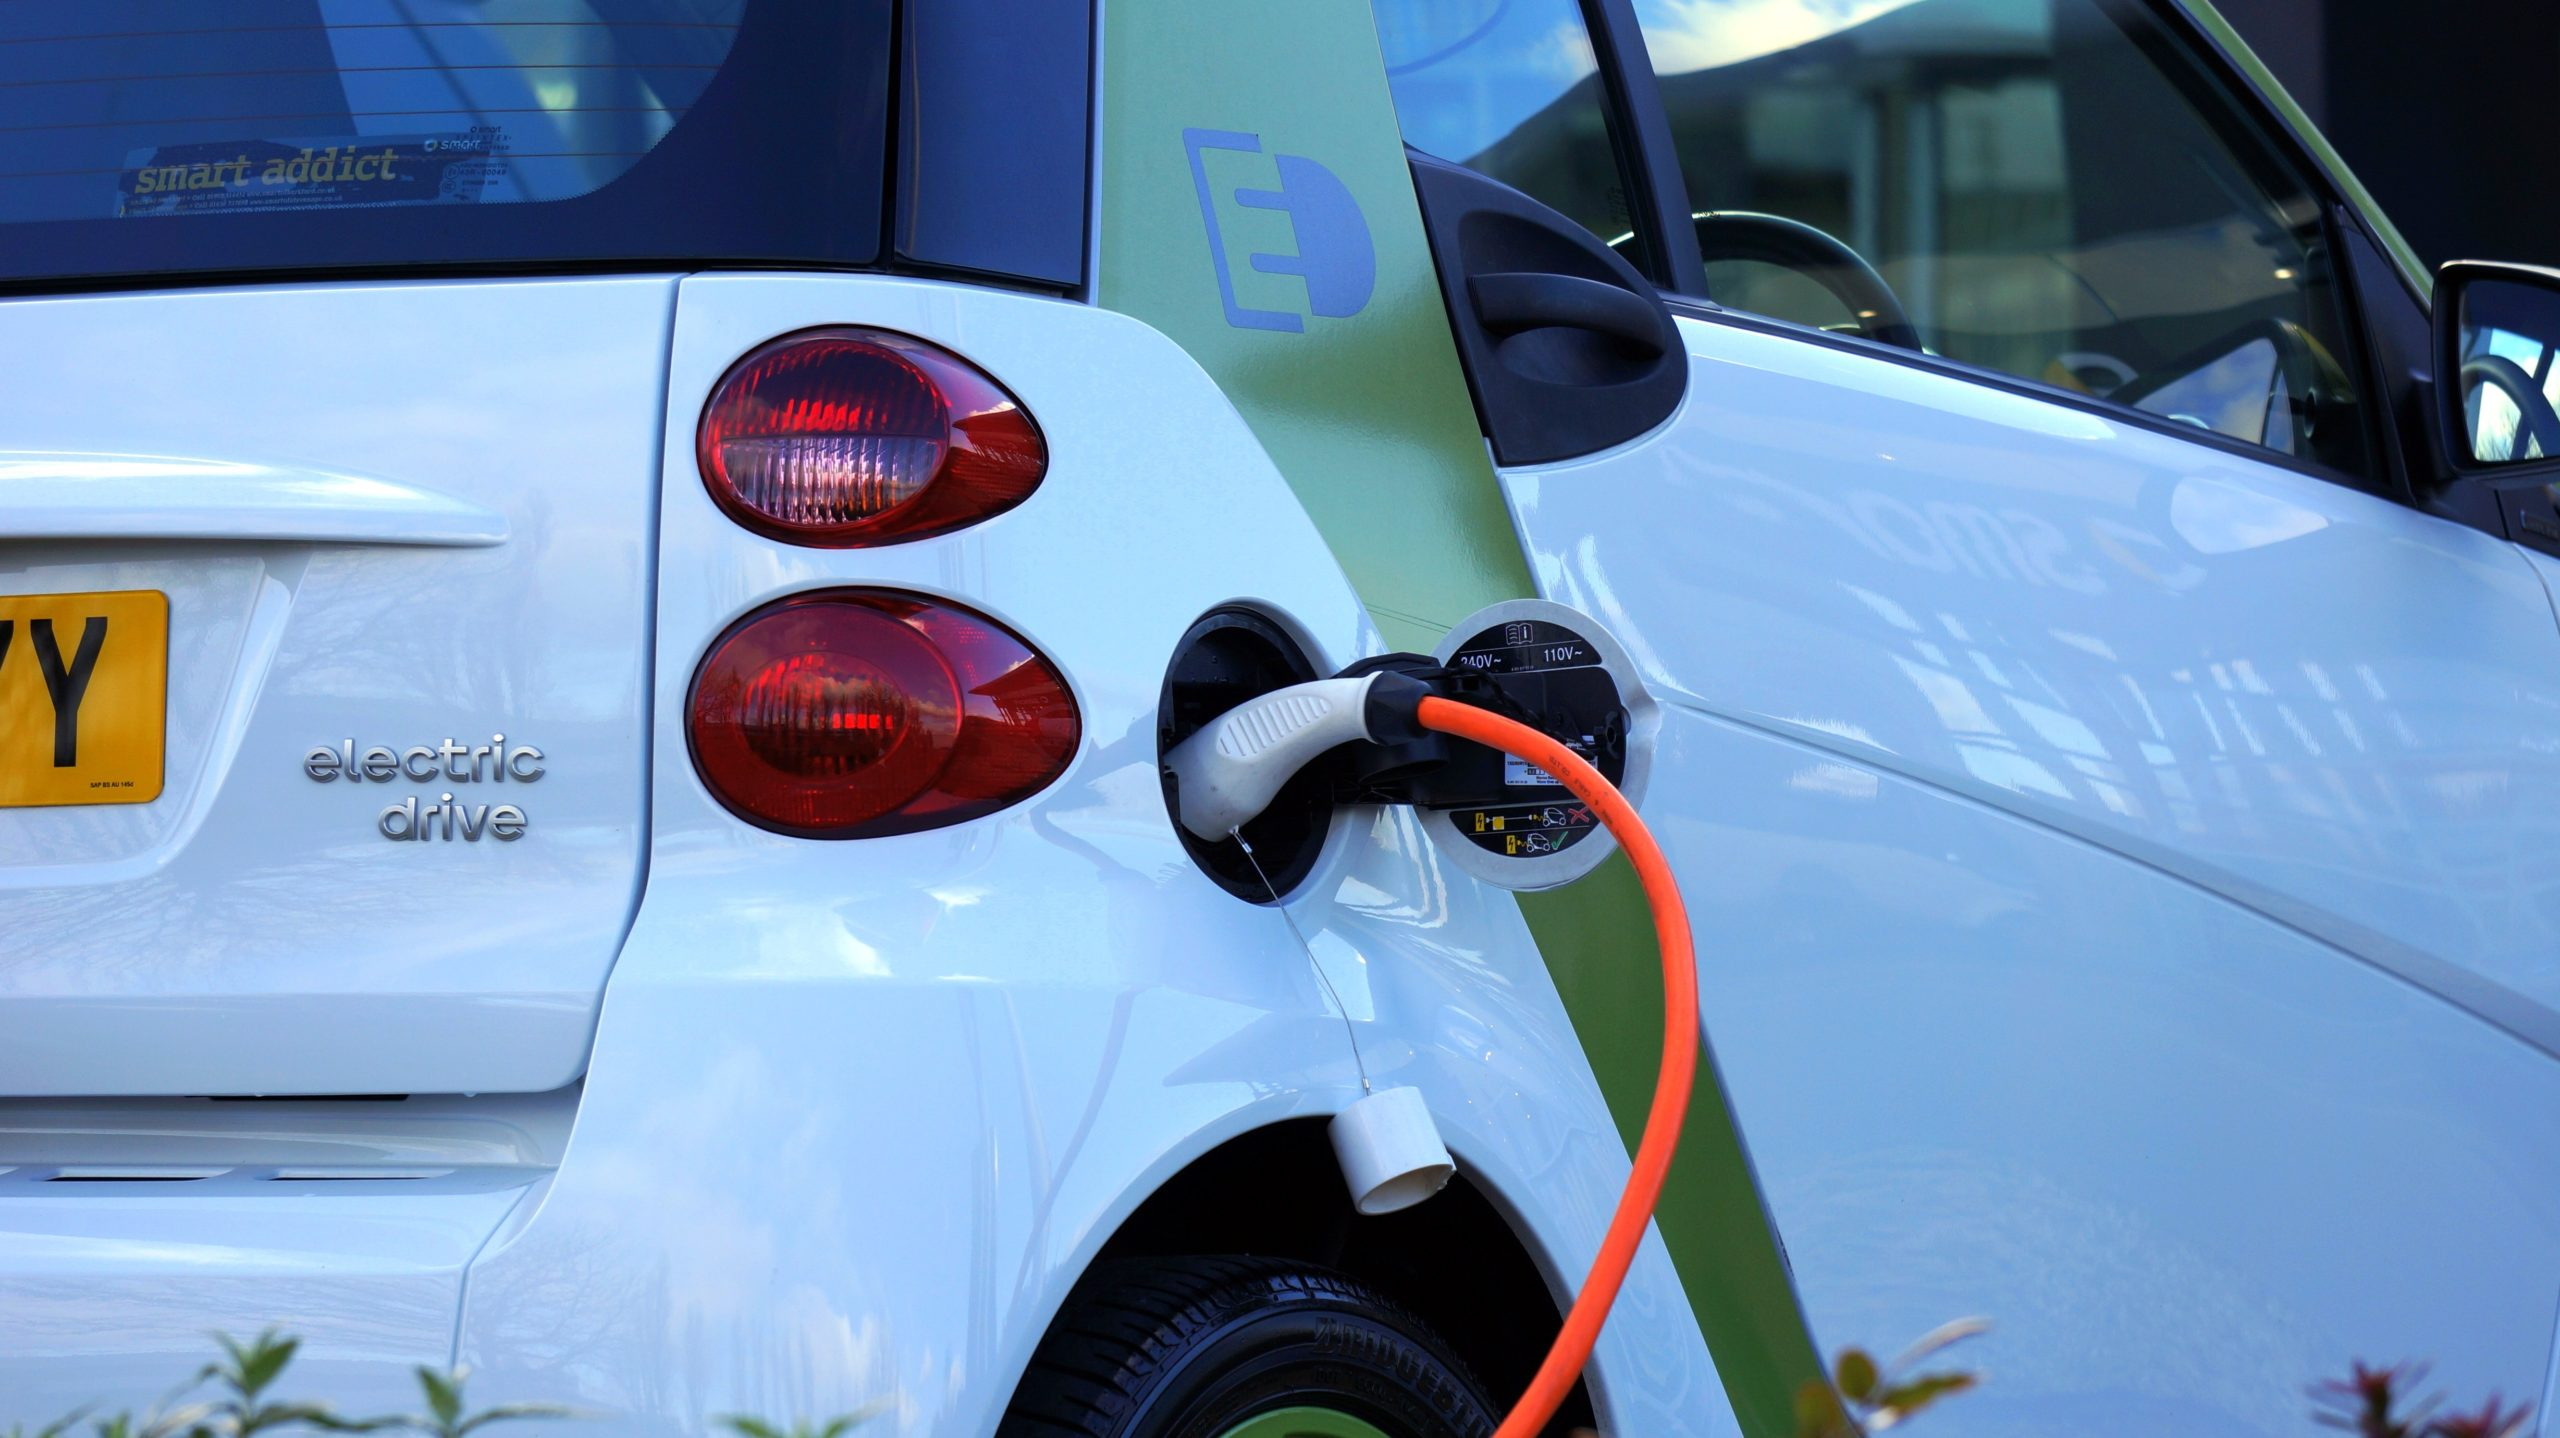 Electric cars perfect for millions, but are silent vehicles safe?